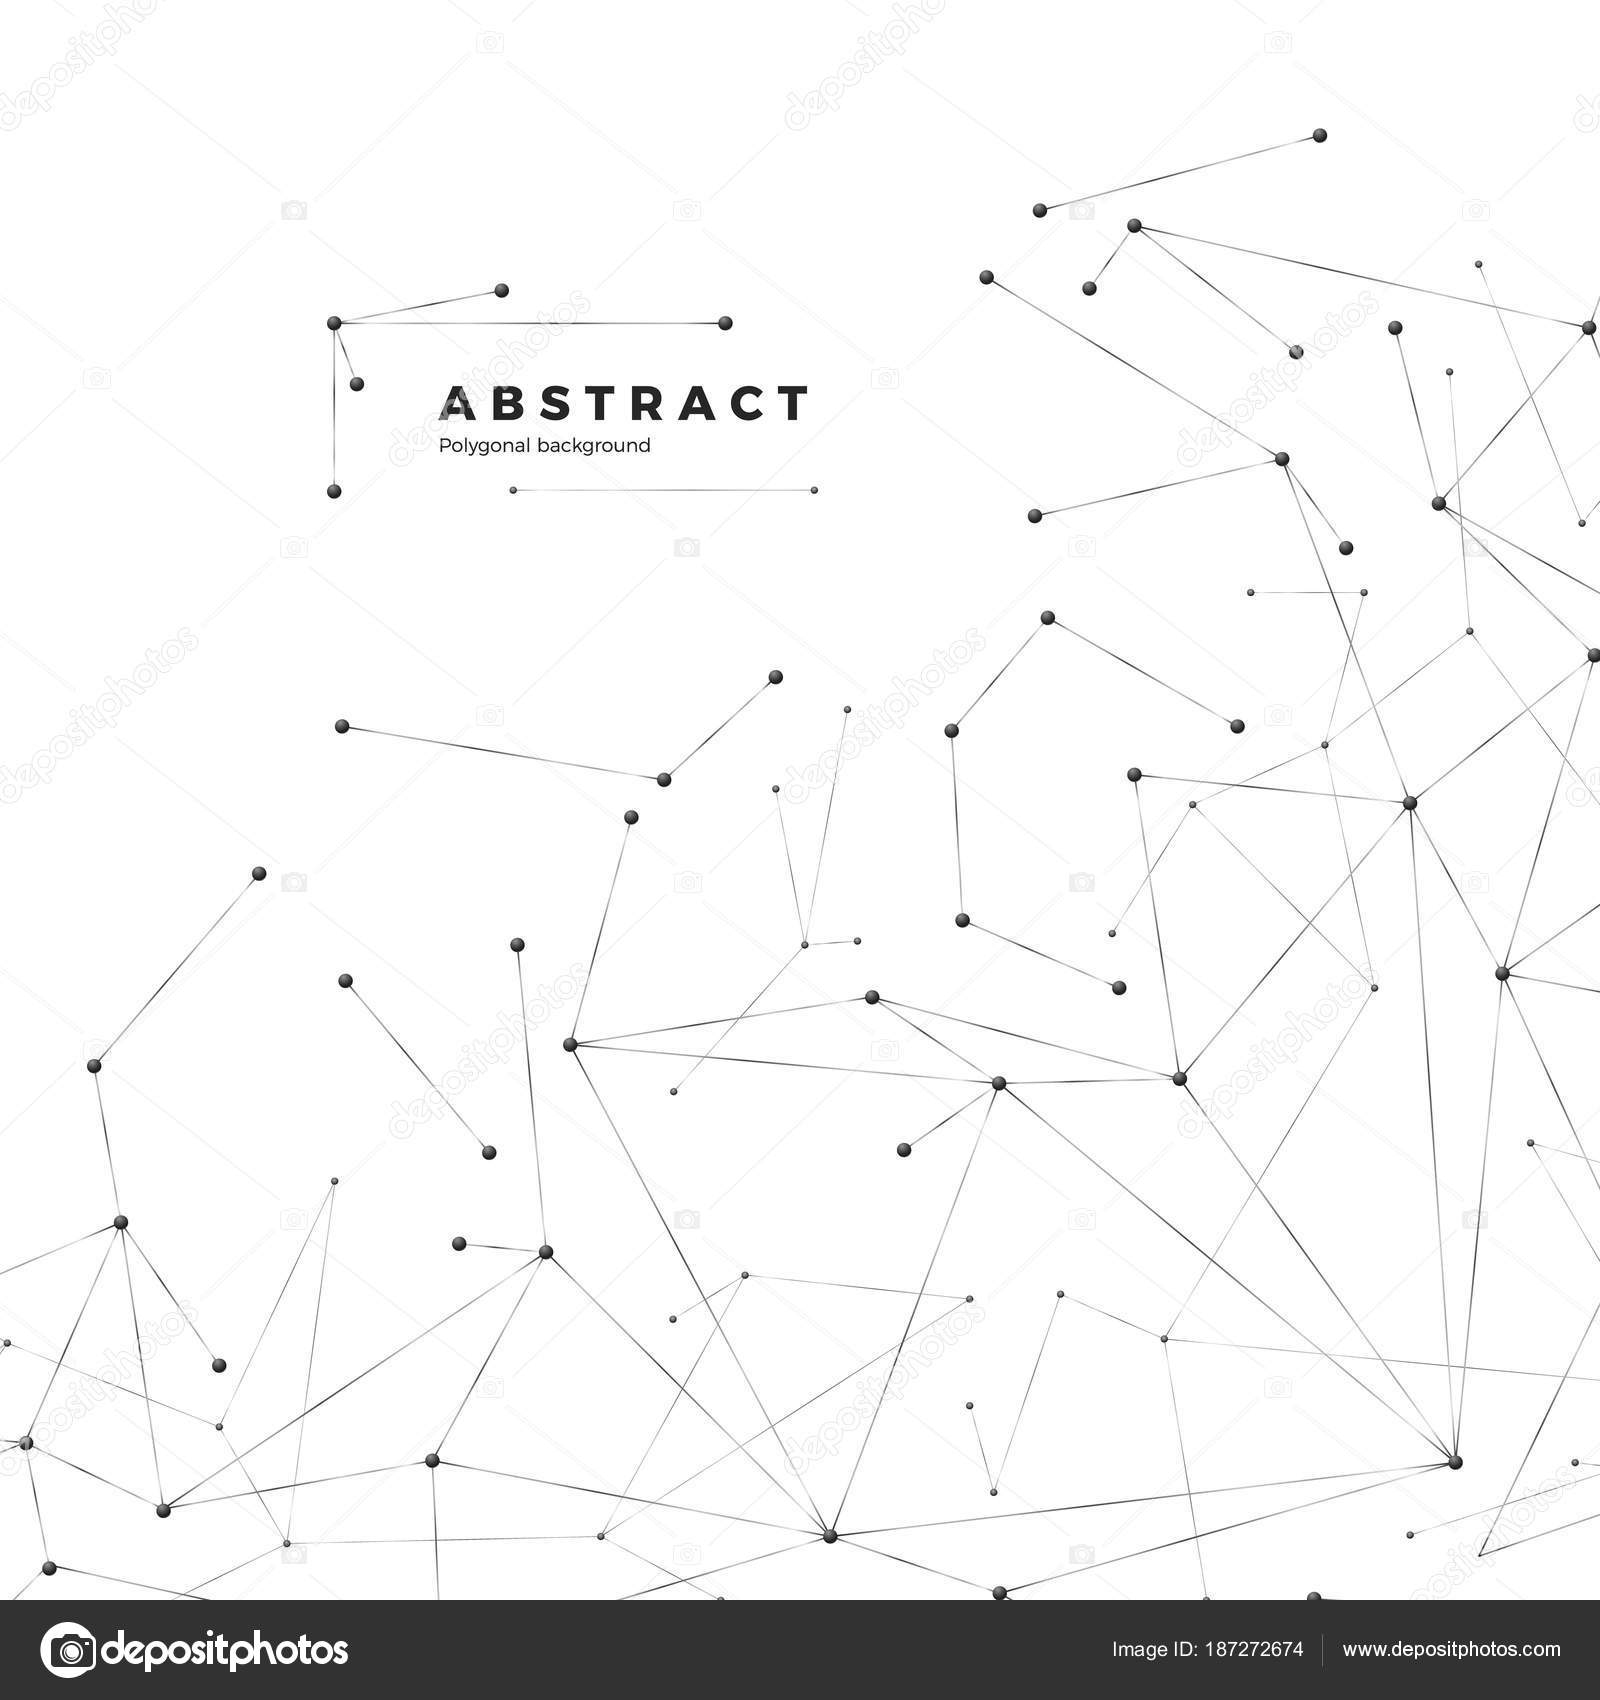 Technology and science background abstract web and nodes plexus technology and science background abstract web and nodes plexus atom structure vector illustration ccuart